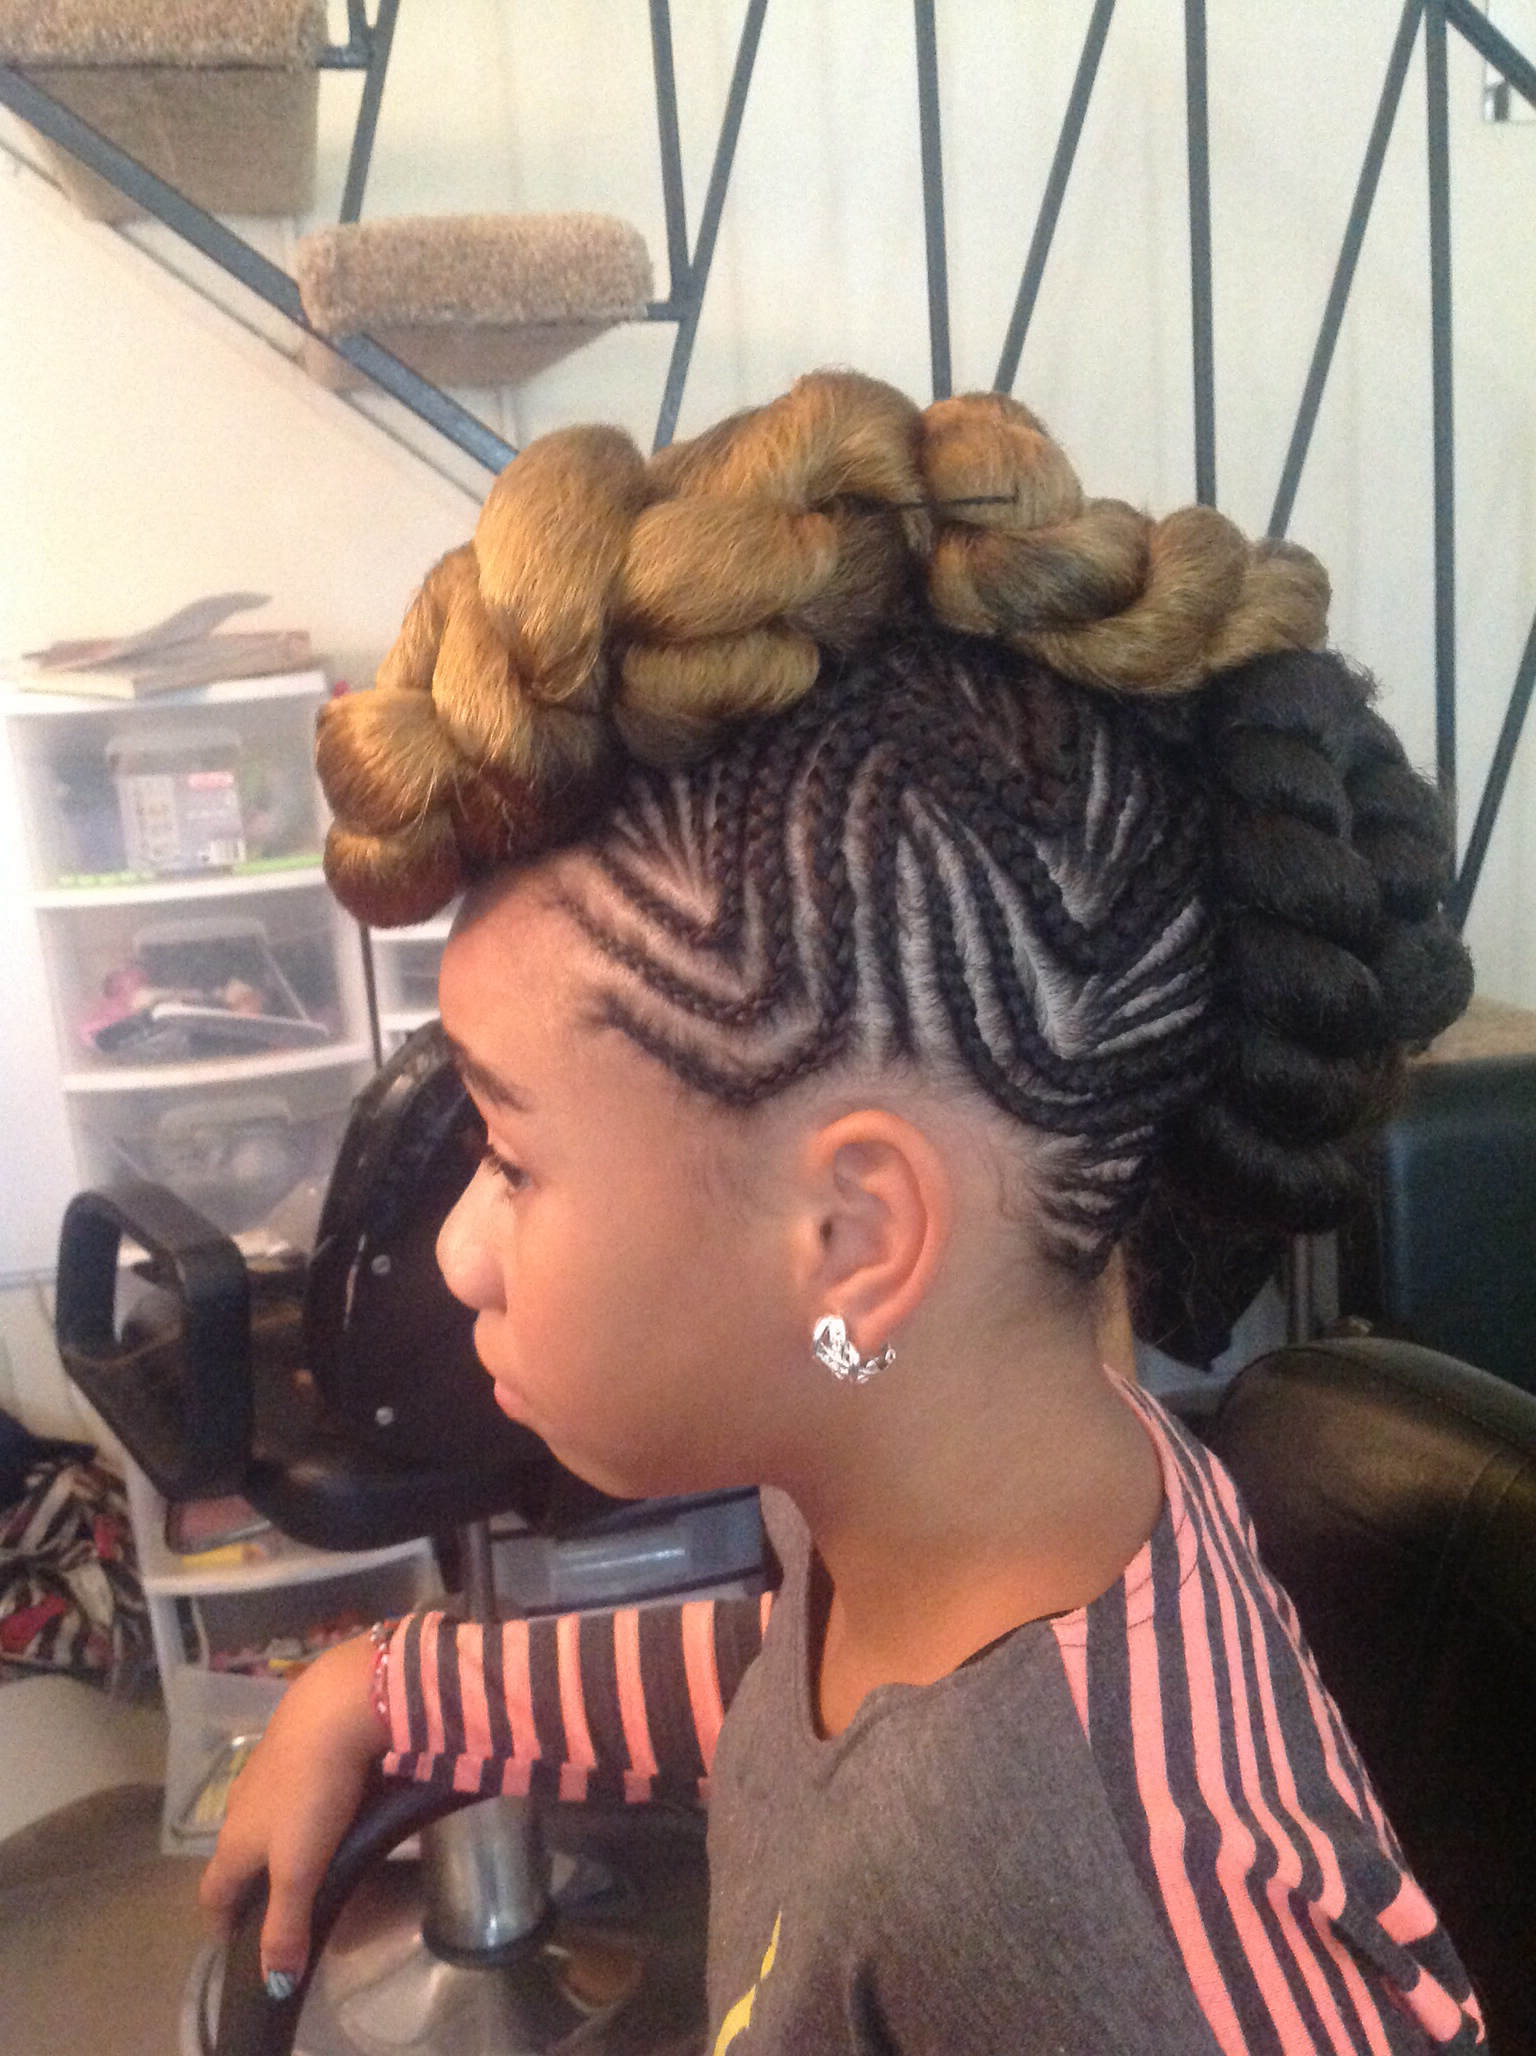 15 Foremost Braided Mohawk Hairstyles – Mohawk With Braids Inside Most Current Big Braid Mohawk Hairstyles (Gallery 5 of 20)